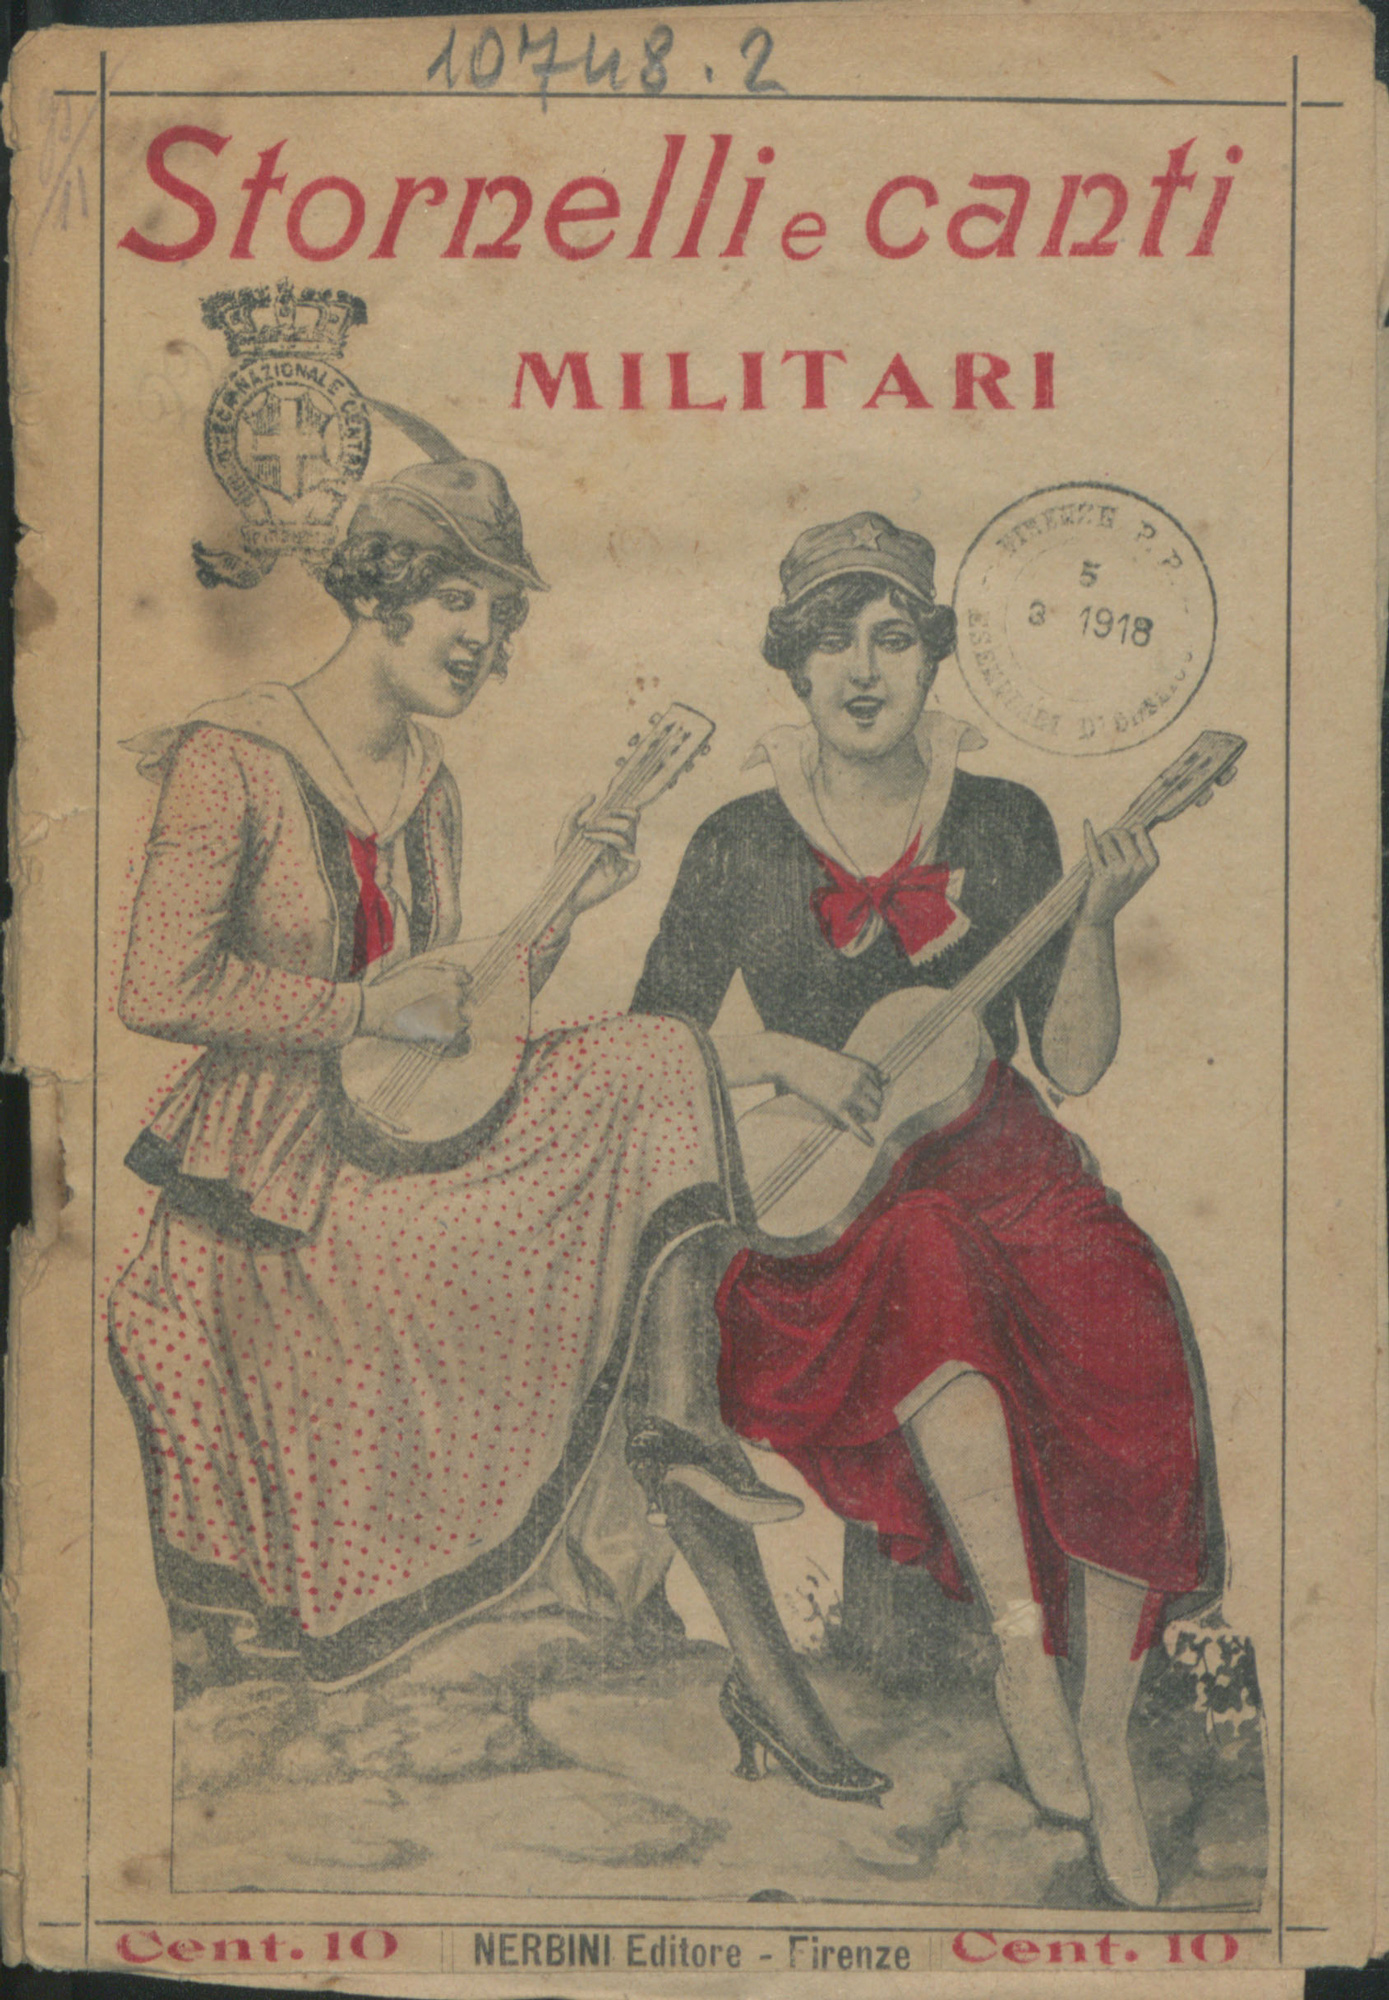 Folk songs and military songs